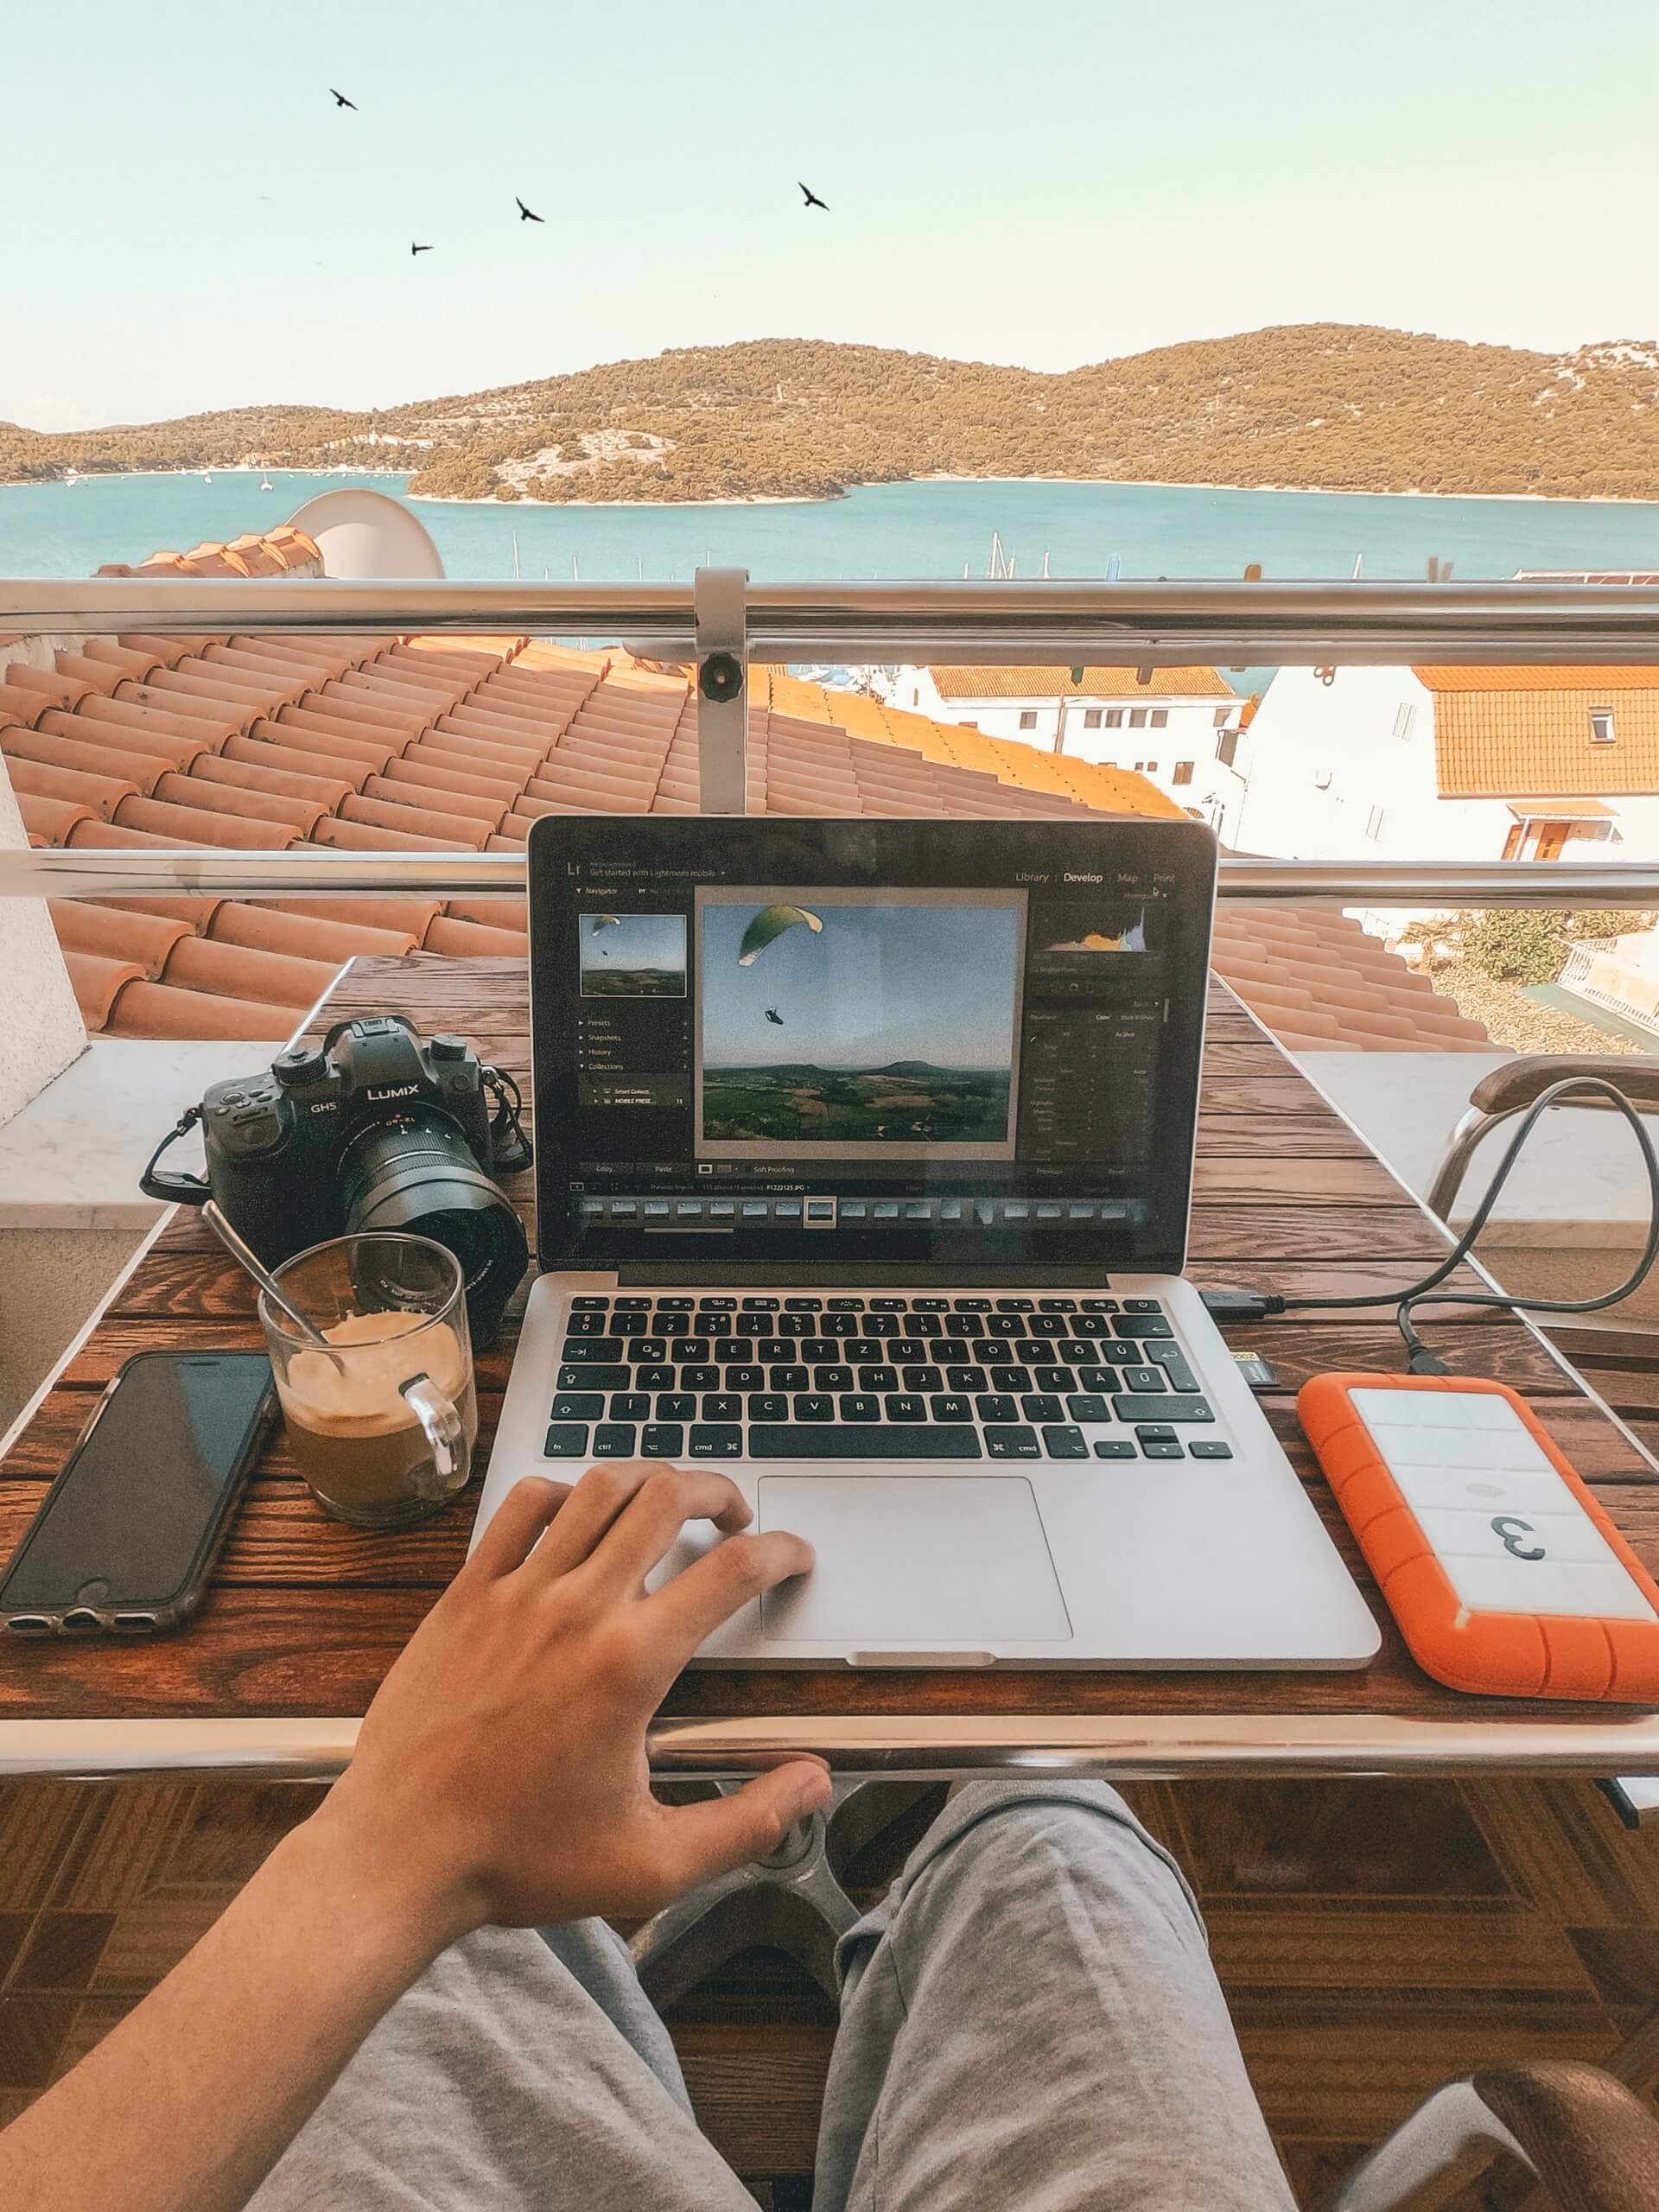 A remote worker in Croatia working at his laptop on a balcony